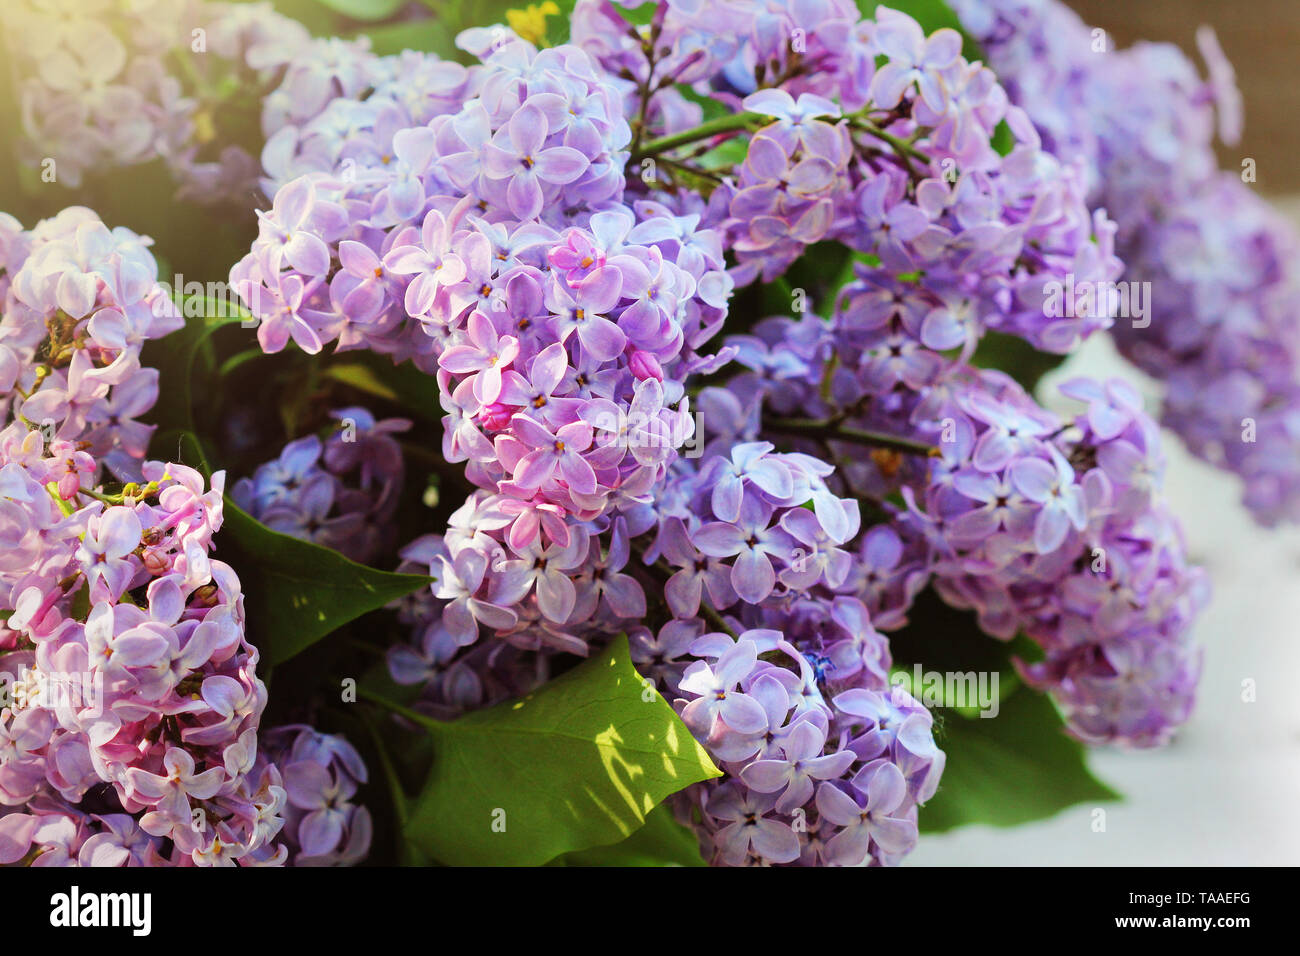 A branch of sirens on a tree in a garden, park. Beautiful flowering flowers of lilac tree at spring. Blossom in Spring. Spring concept. - Stock Image